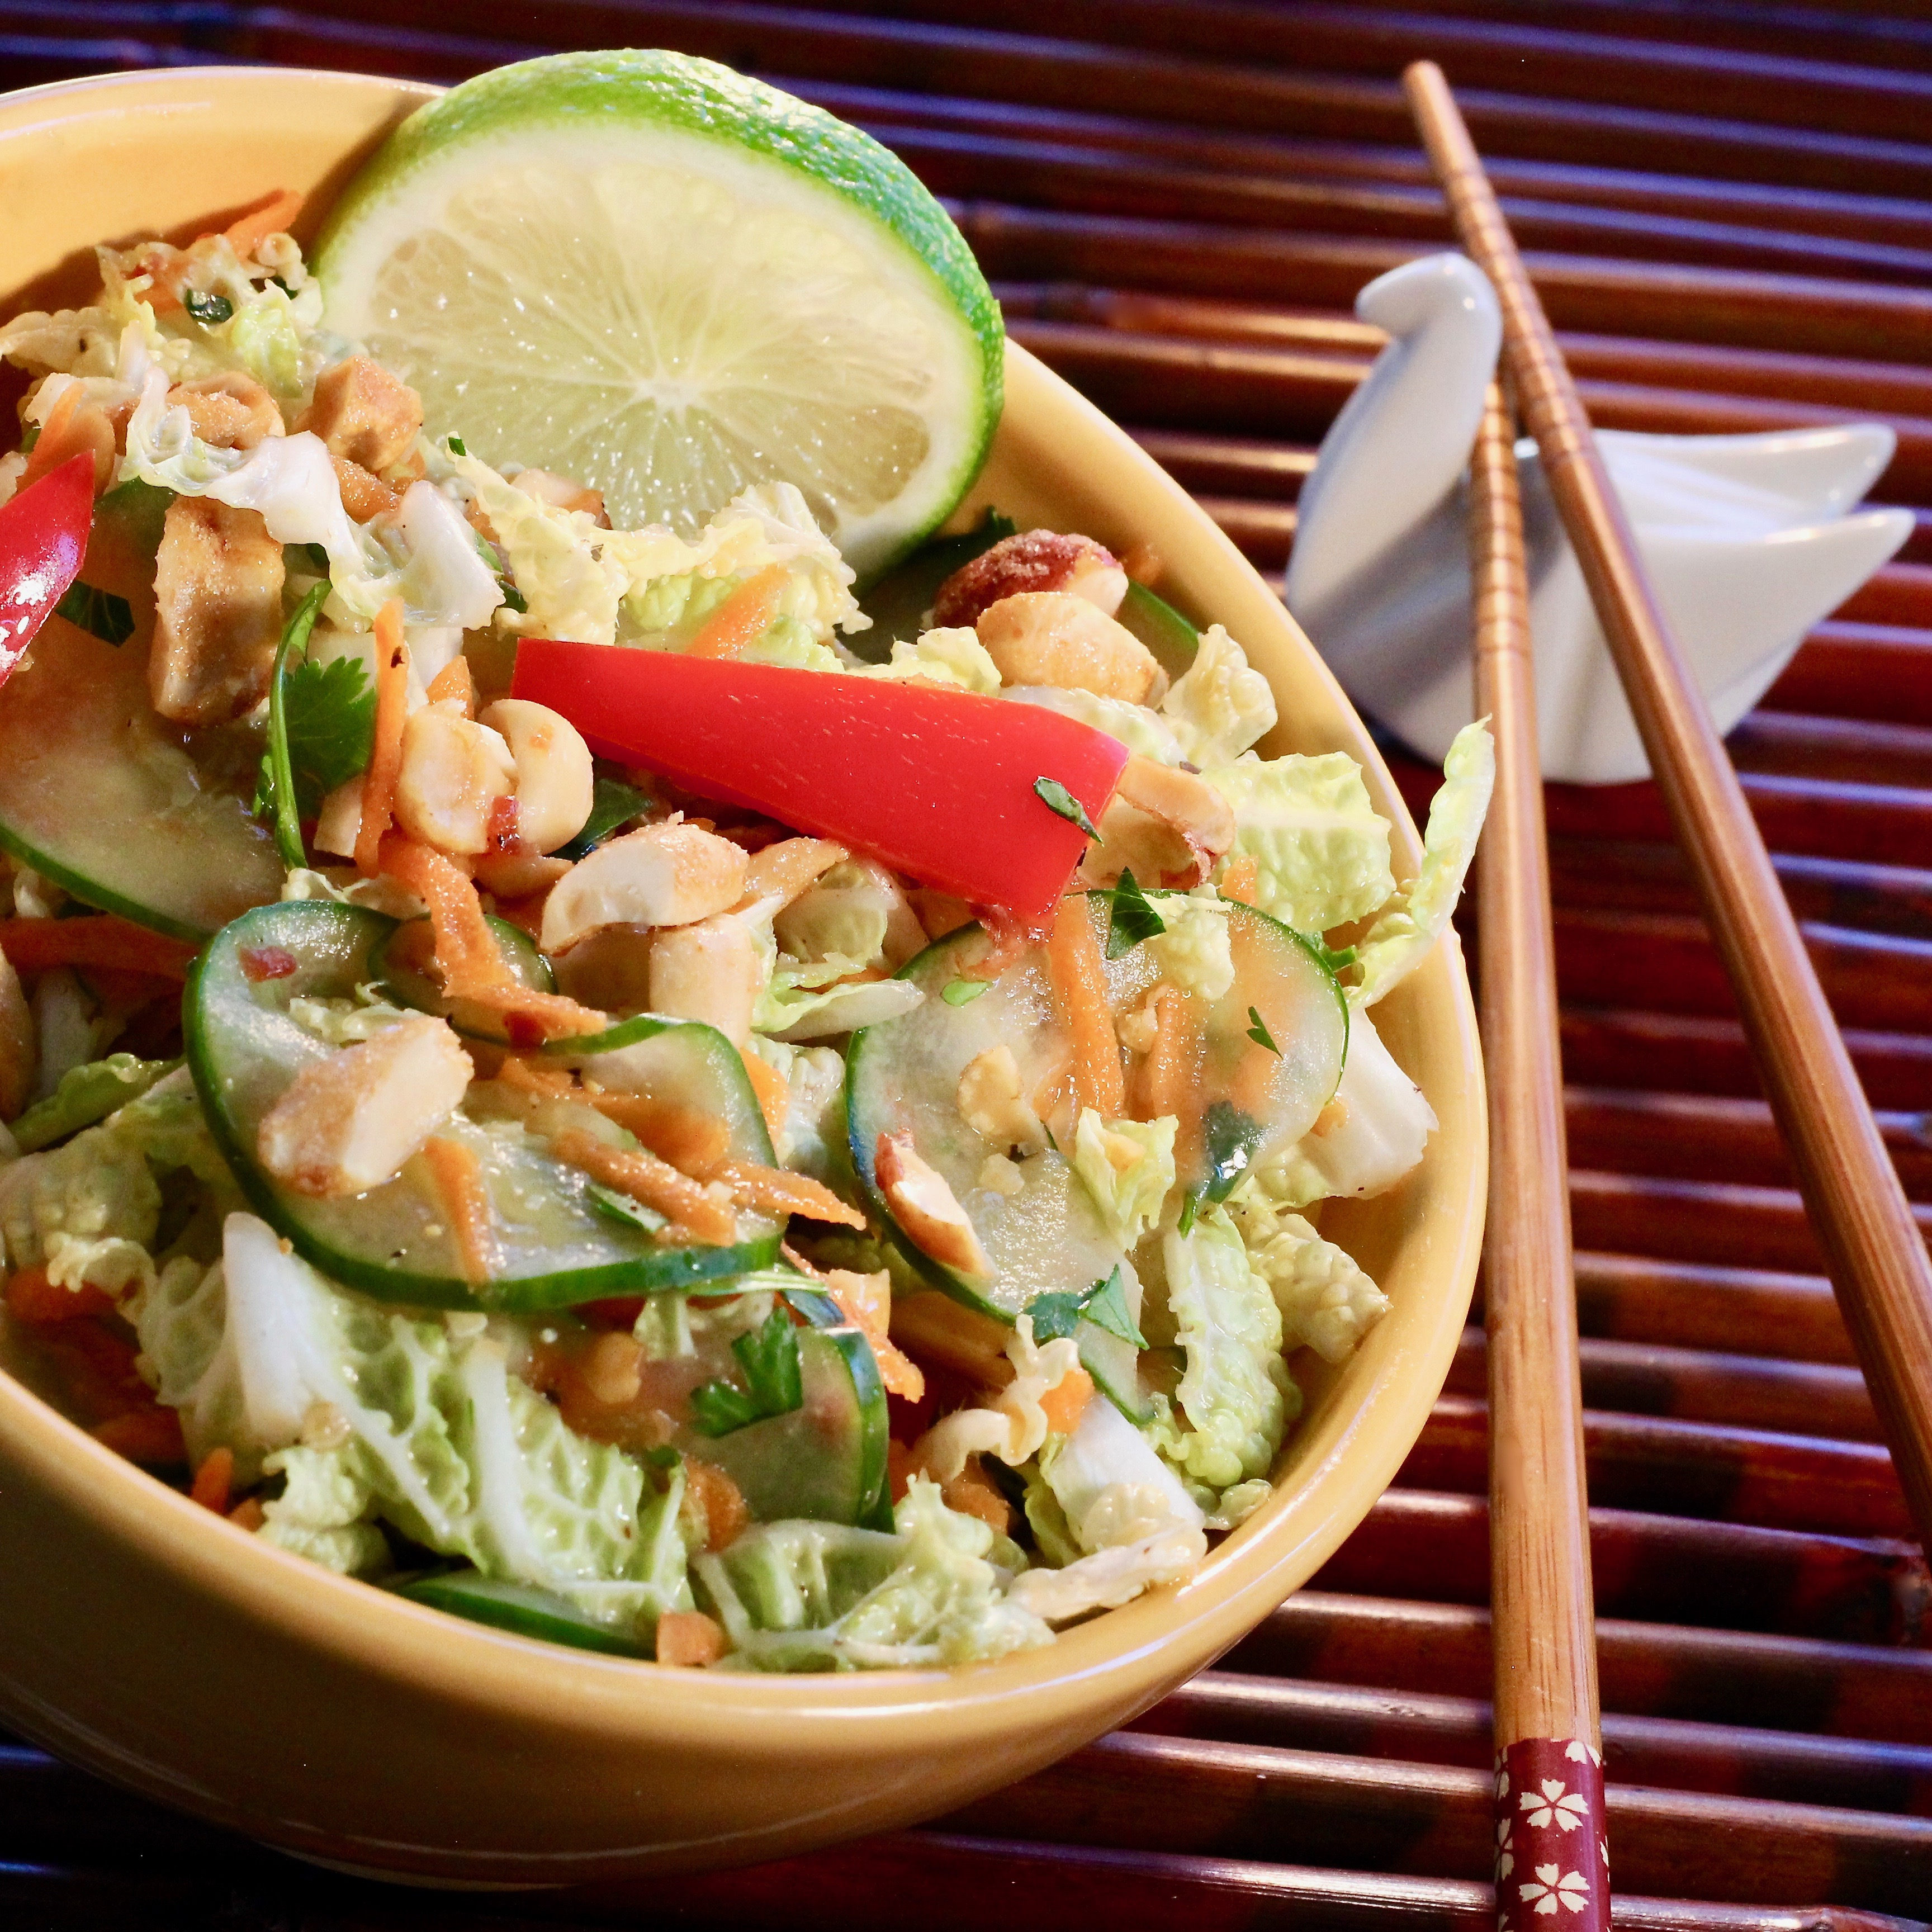 Tangy Thai Cabbage Salad